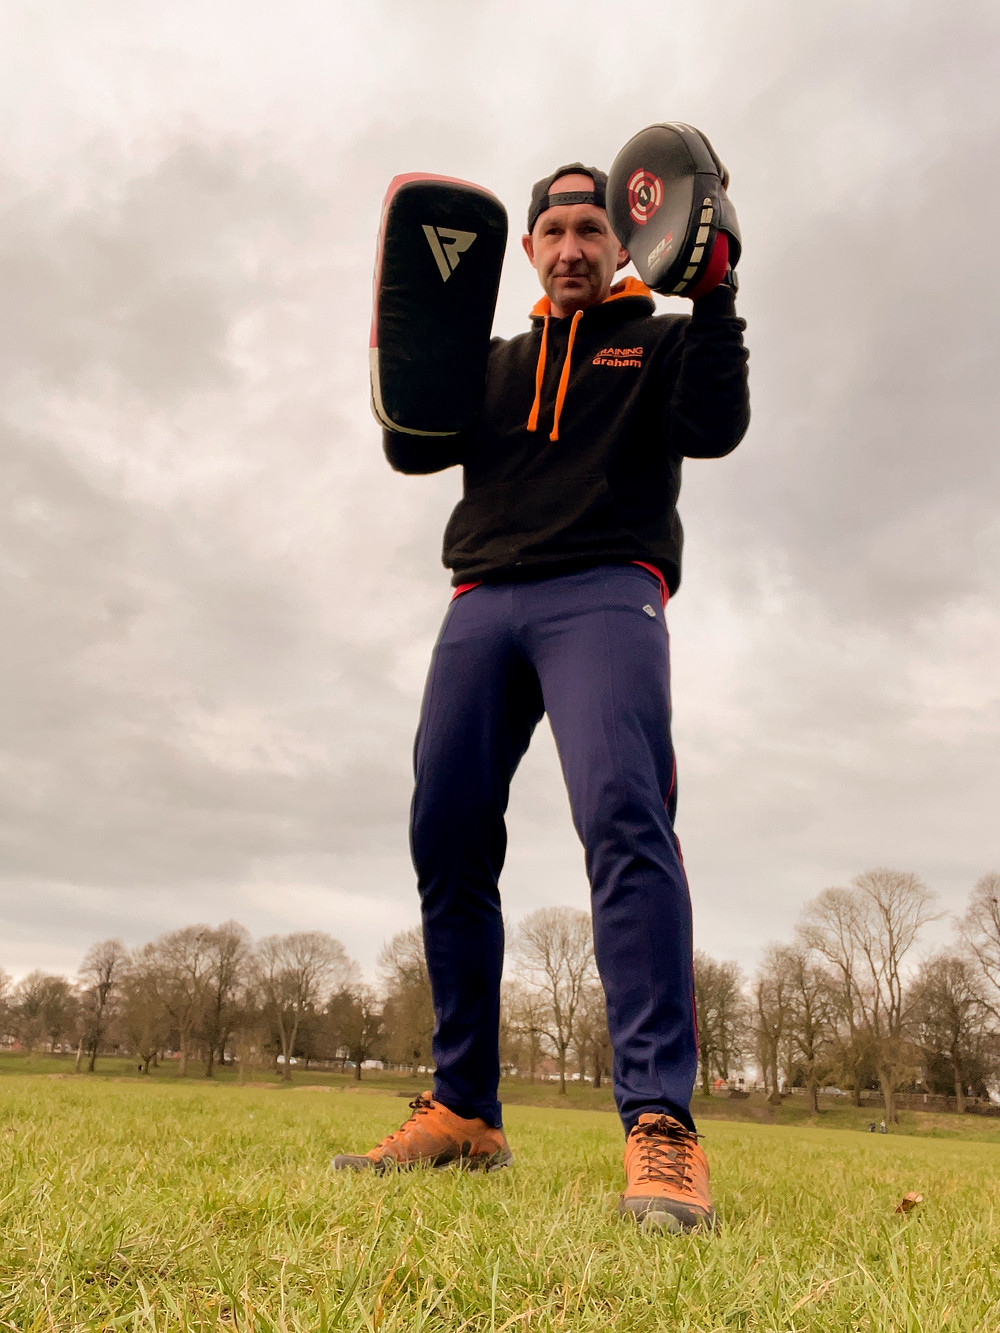 Graham Kavanagh holding boxing pads